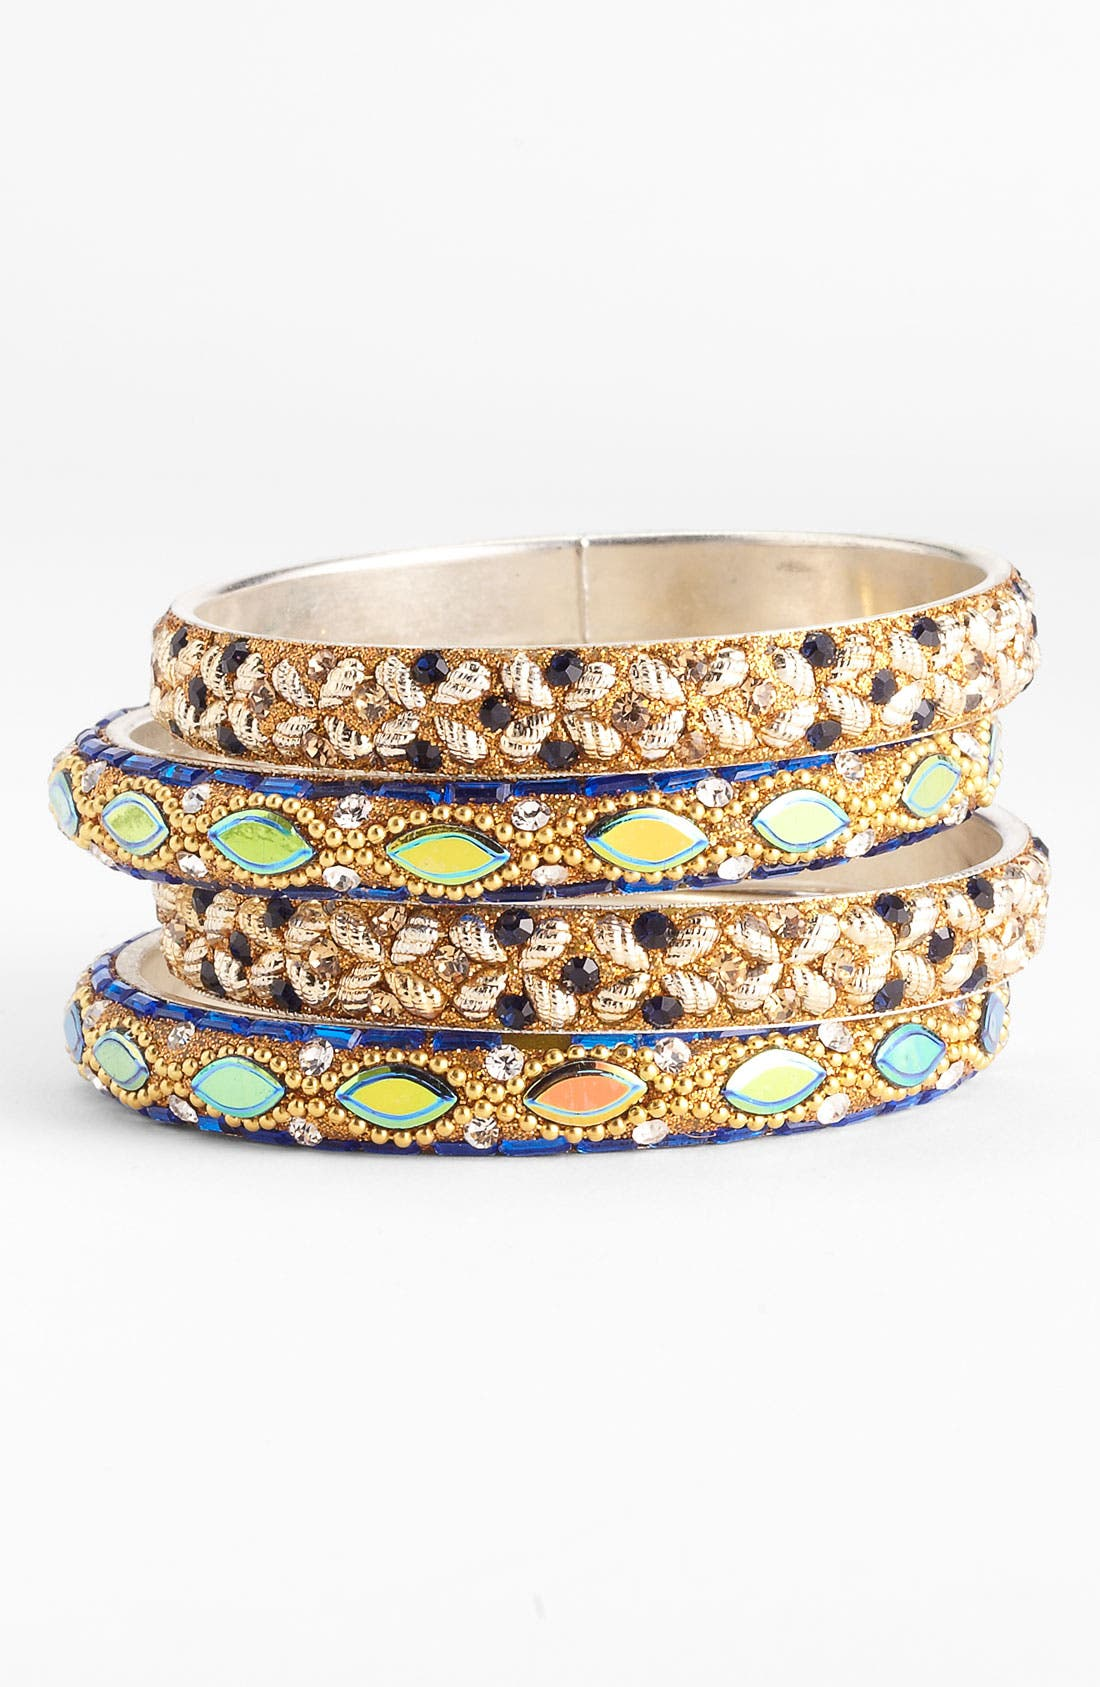 Main Image - Chamak by Priya Kakkar Bangles (Set of 4)